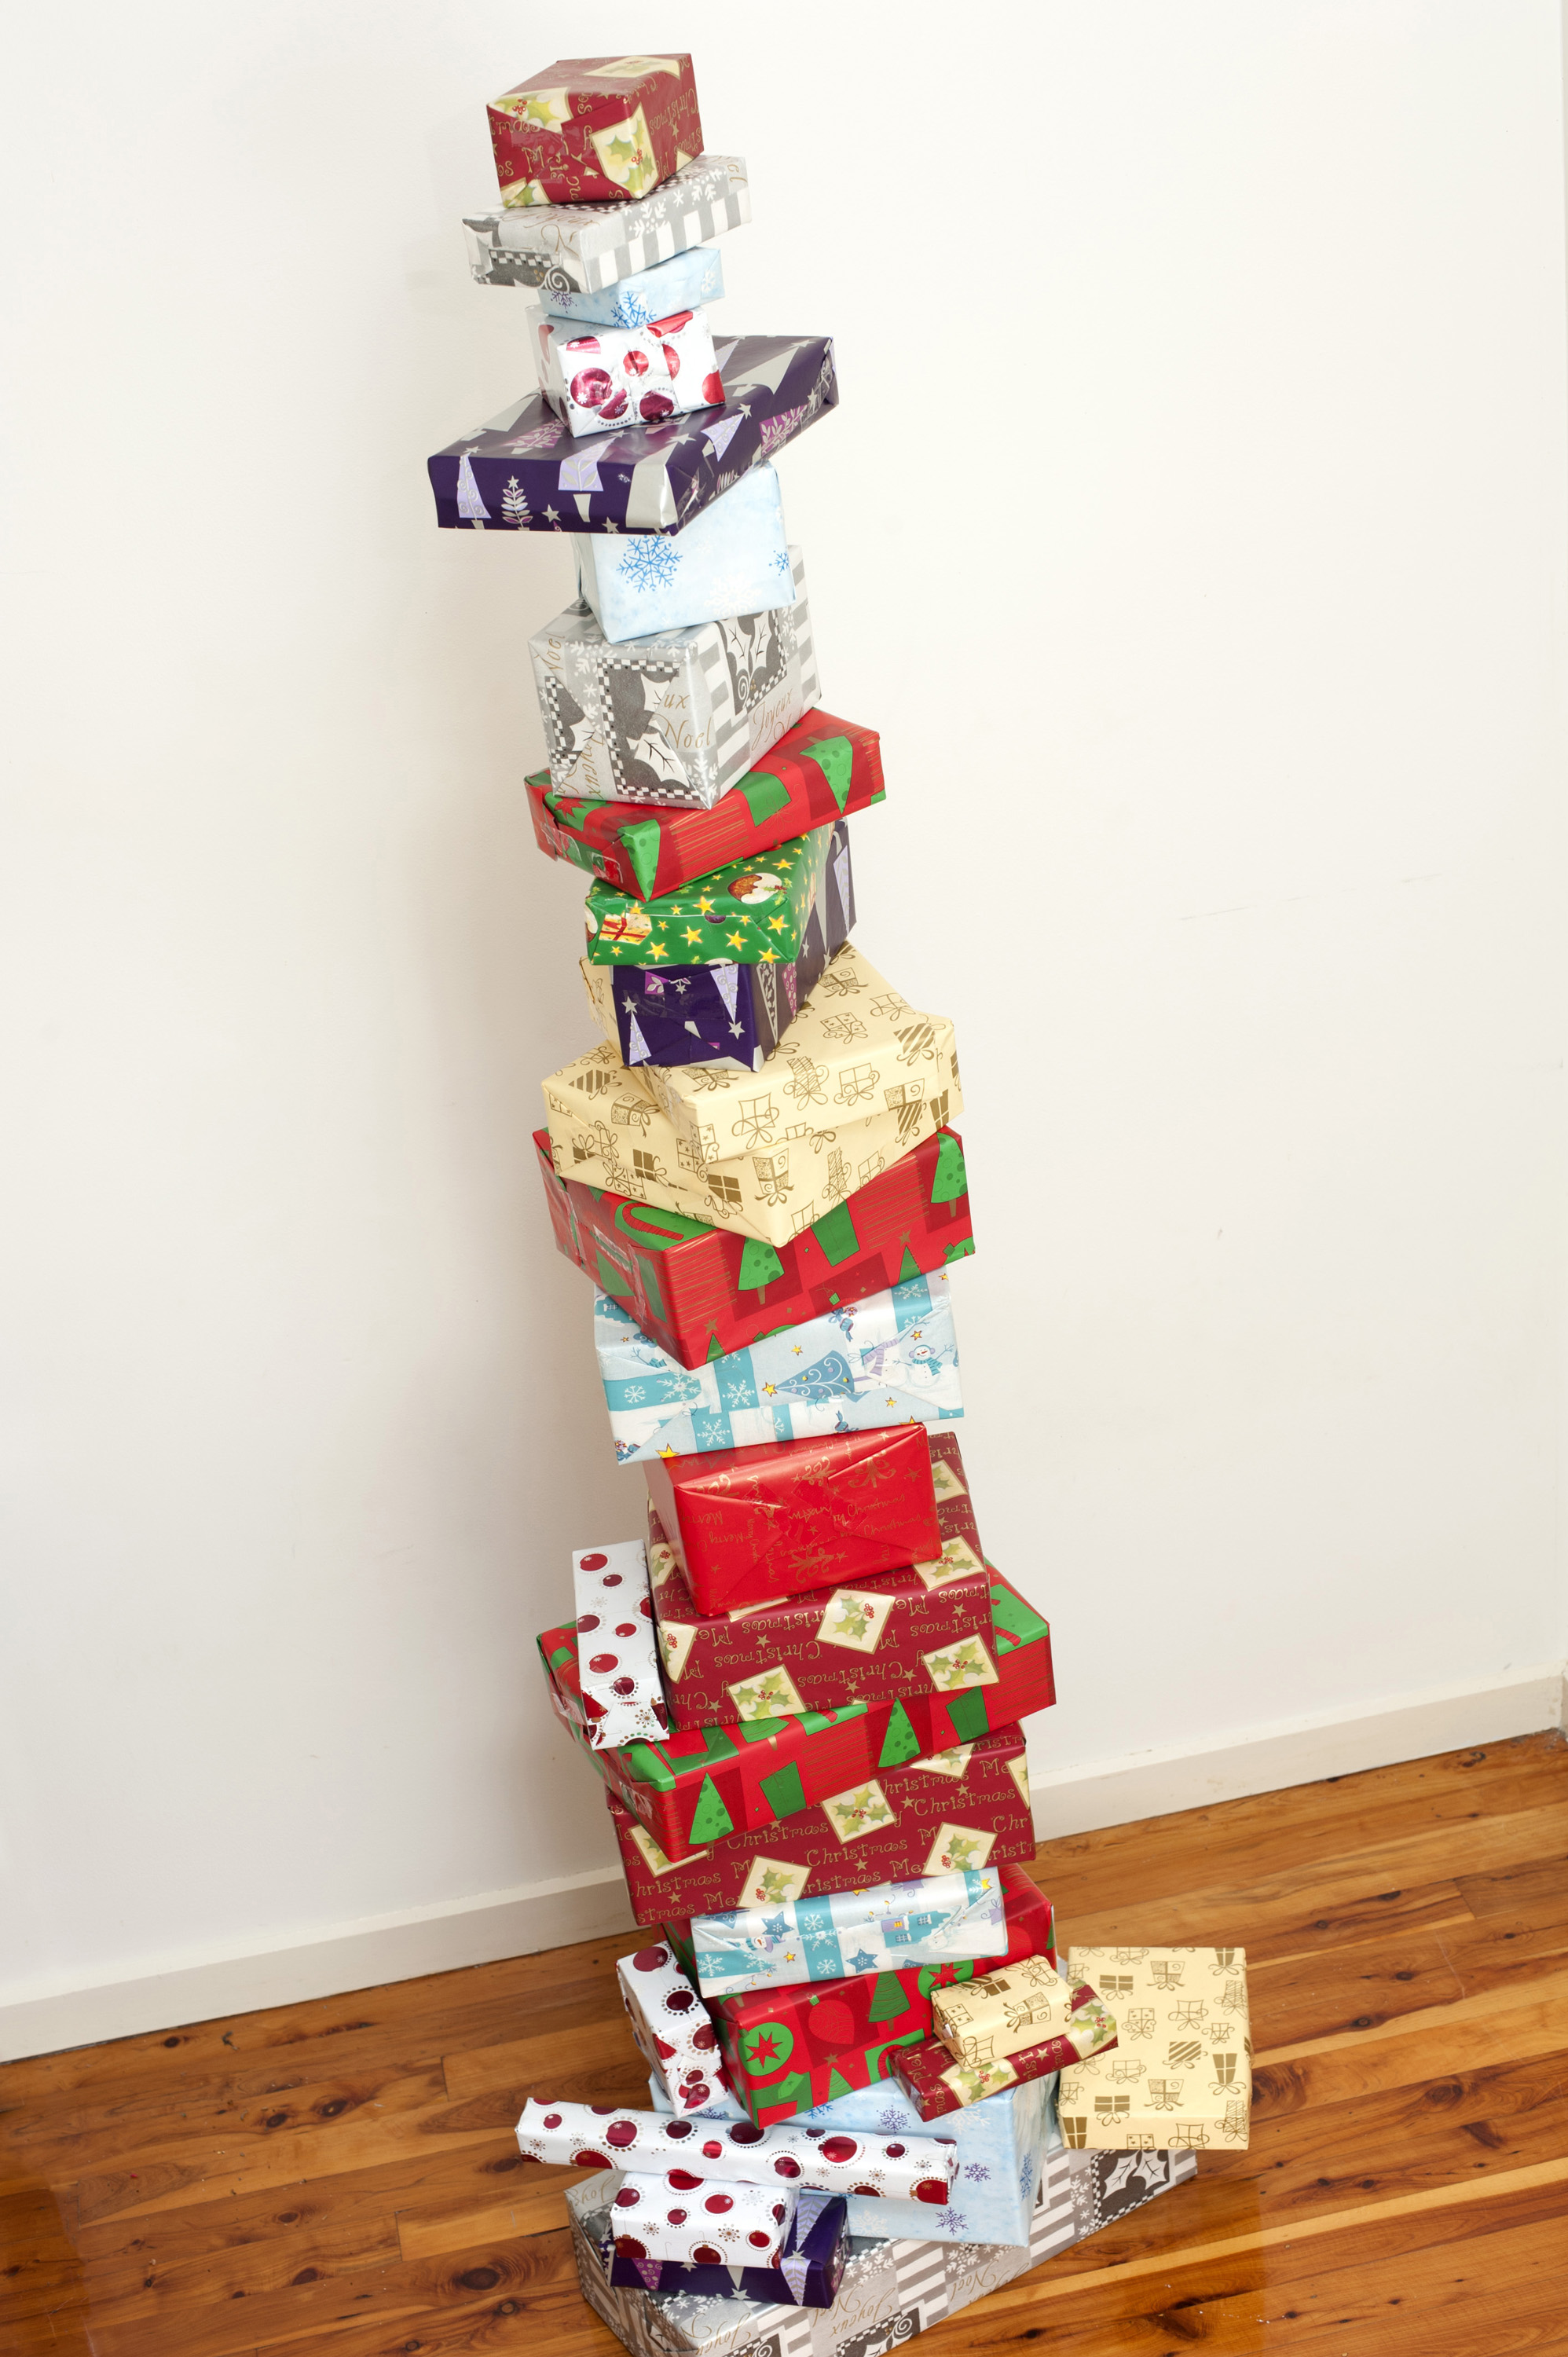 Stacked tower of colourful Christmas gifts neatly balanced one on top of the other in their pretty traditional patterned paper for a unique Xmas decoration in the home